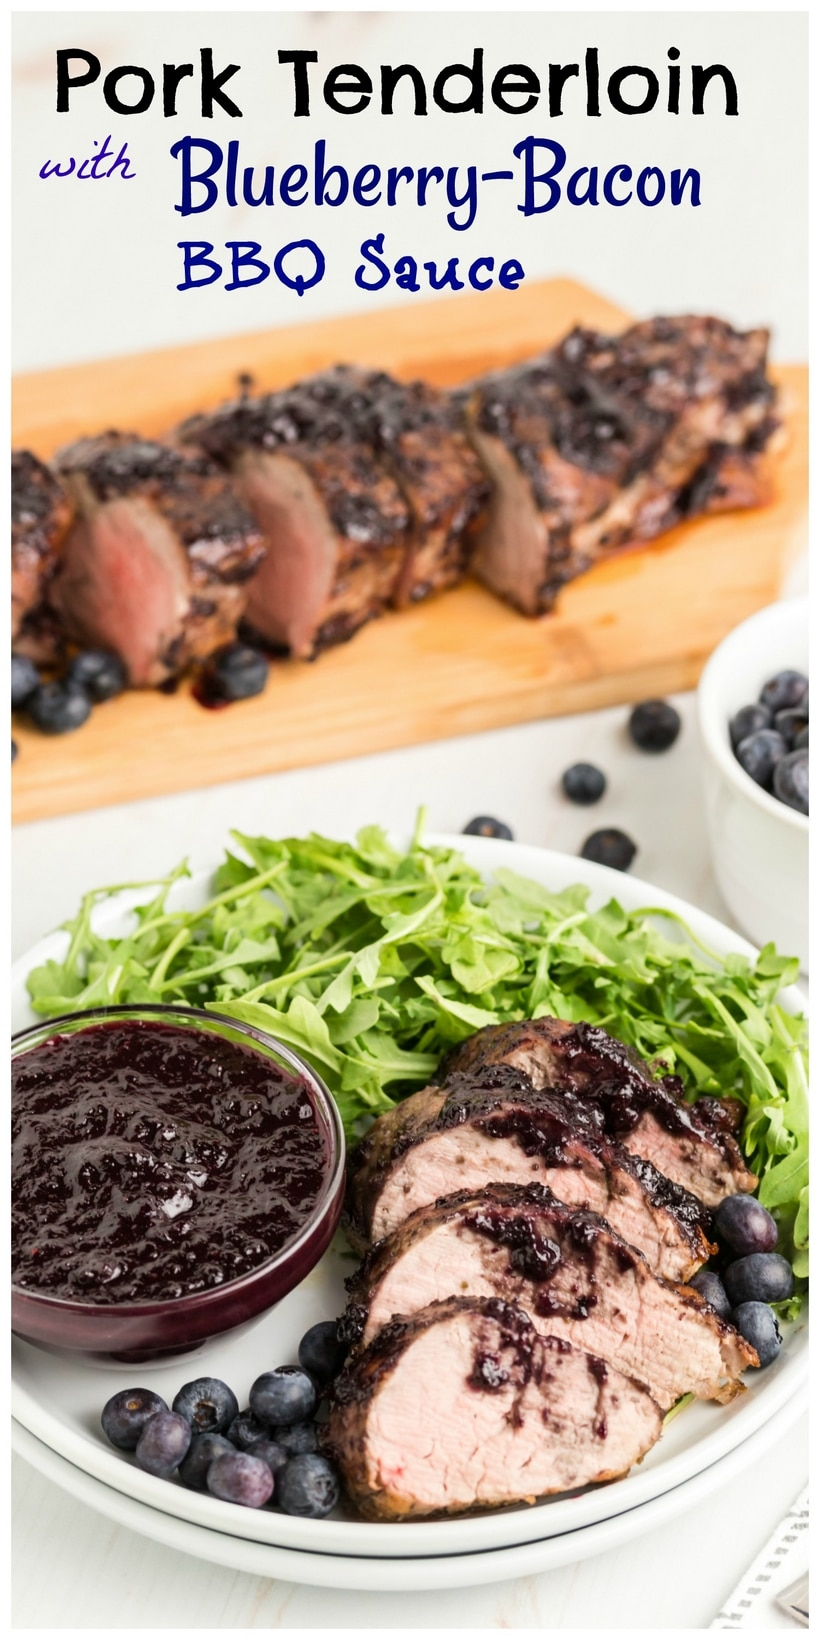 Put those summer blueberries to good use with this delicious PORK TENDERLOIN with BLUEBERRY-BACON BARBECUE SAUCE. The blueberry sauce is tangy, smokey and sweet all in one, and pork tenderloin is the perfect vehicle for this incredible sauce. via @cmpollak1